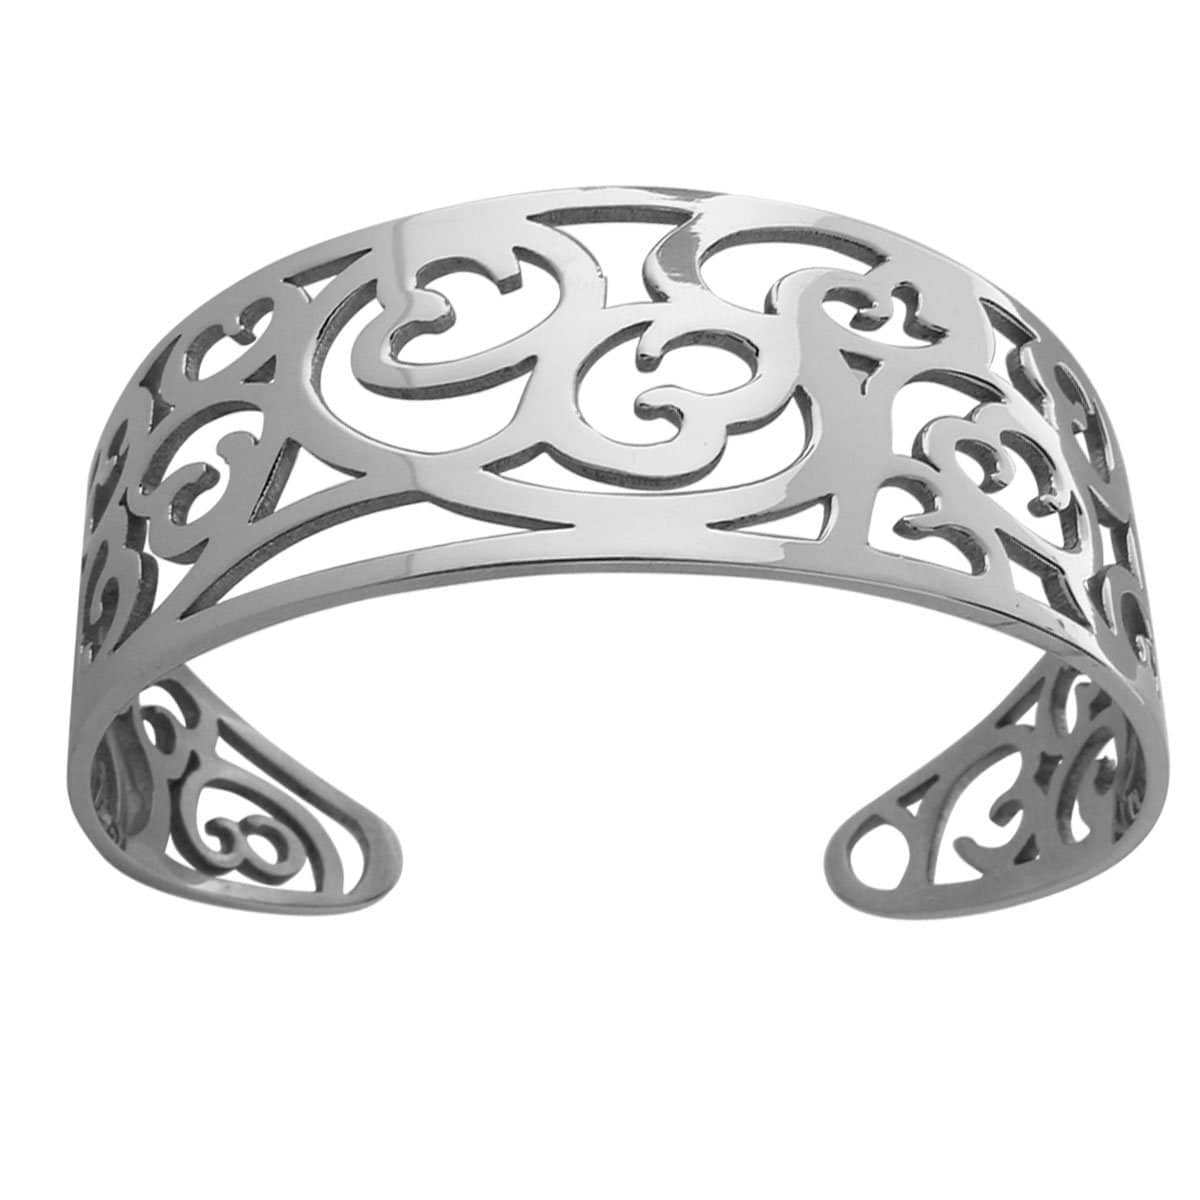 Silver Stainless Steel Fashion Cut-Out Cuff Bangle